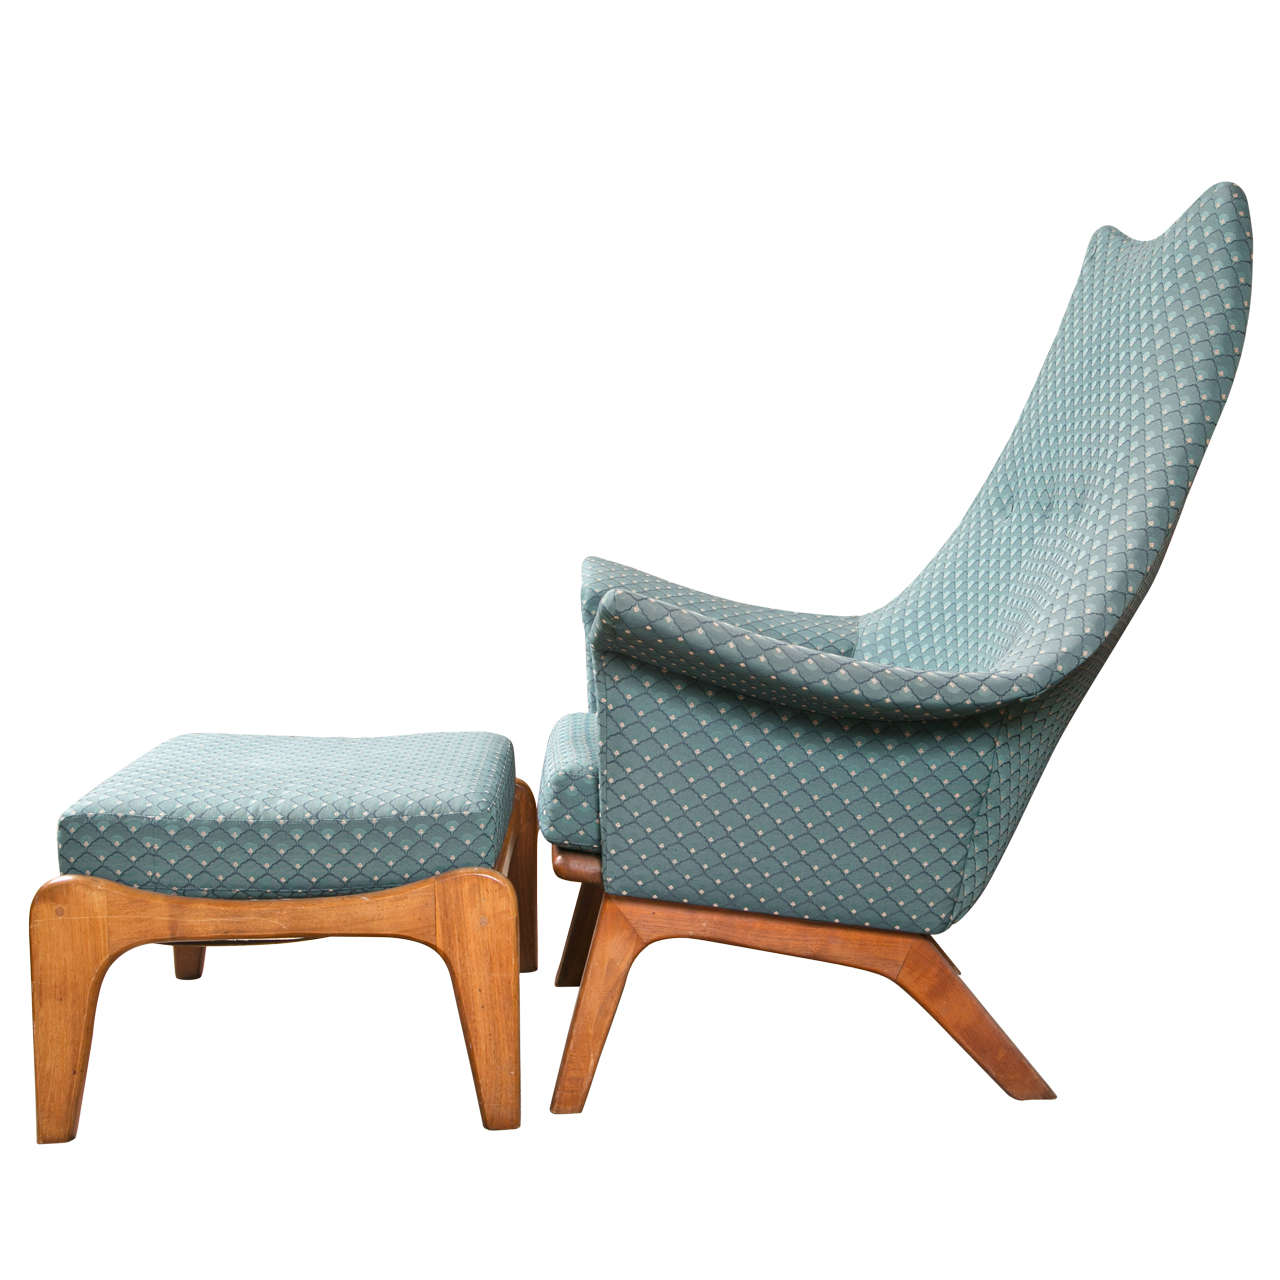 adrian pearsall lounge chair bariatric shower australia danish modern and stool at